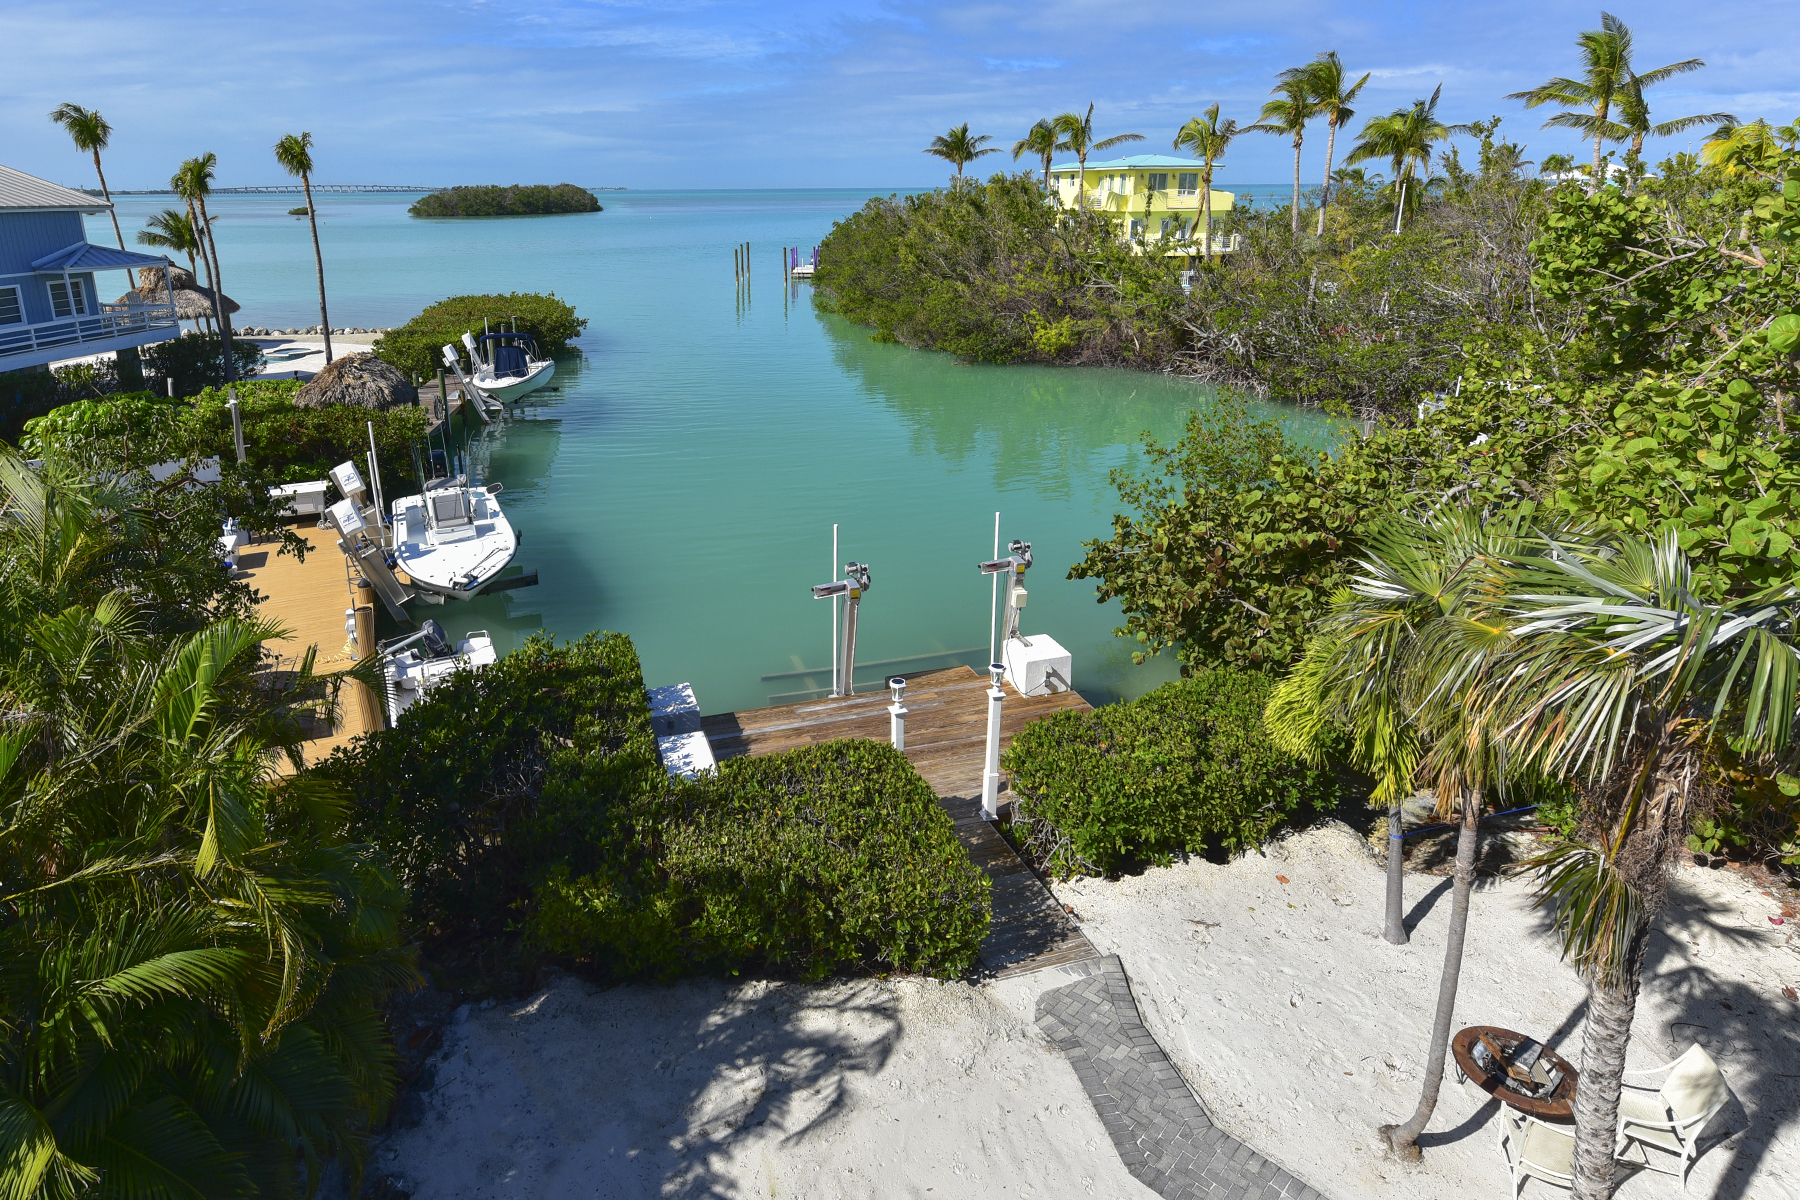 Single Family Home for Rent at Toll Gate Shores 315 Toll Gate Shores Drive Islamorada, Florida 33036 United States